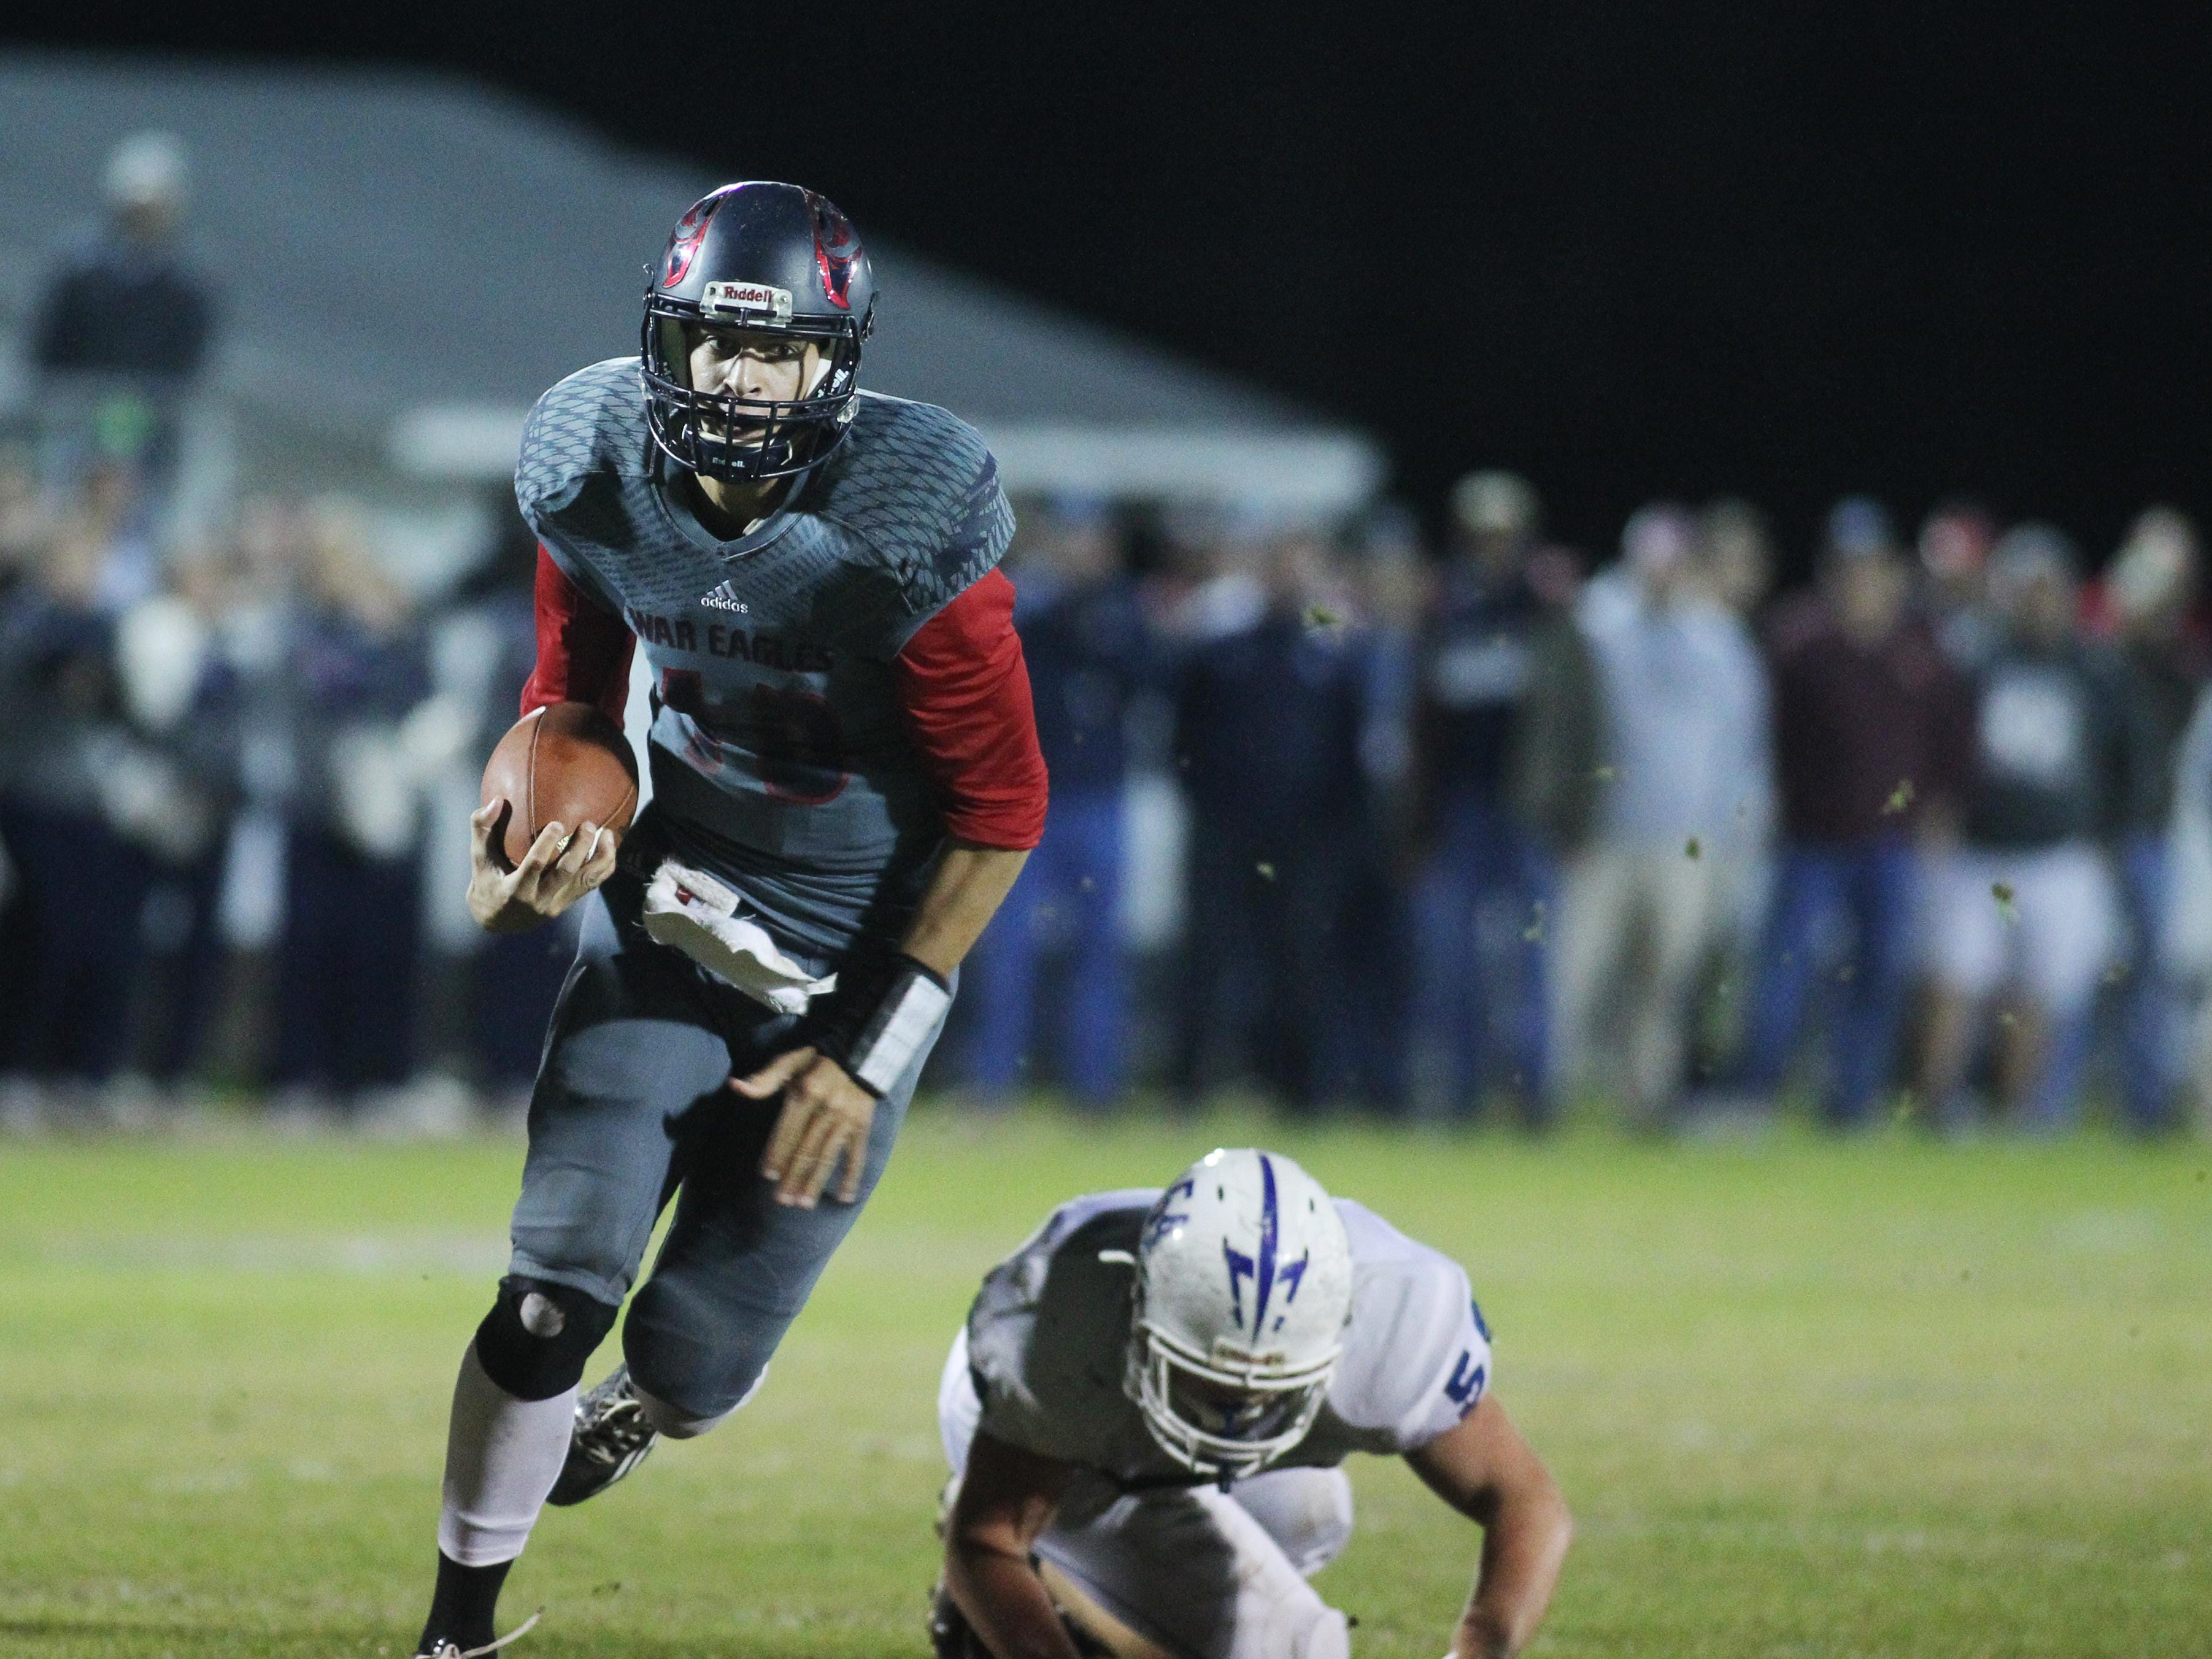 Wakulla quarterback Feleipe Franks used his legs to rush for 59 yards during Friday's Class 5A state semifinal win over Clay, but he also completed 9 of 12 passes for 175 yards and three touchdowns.